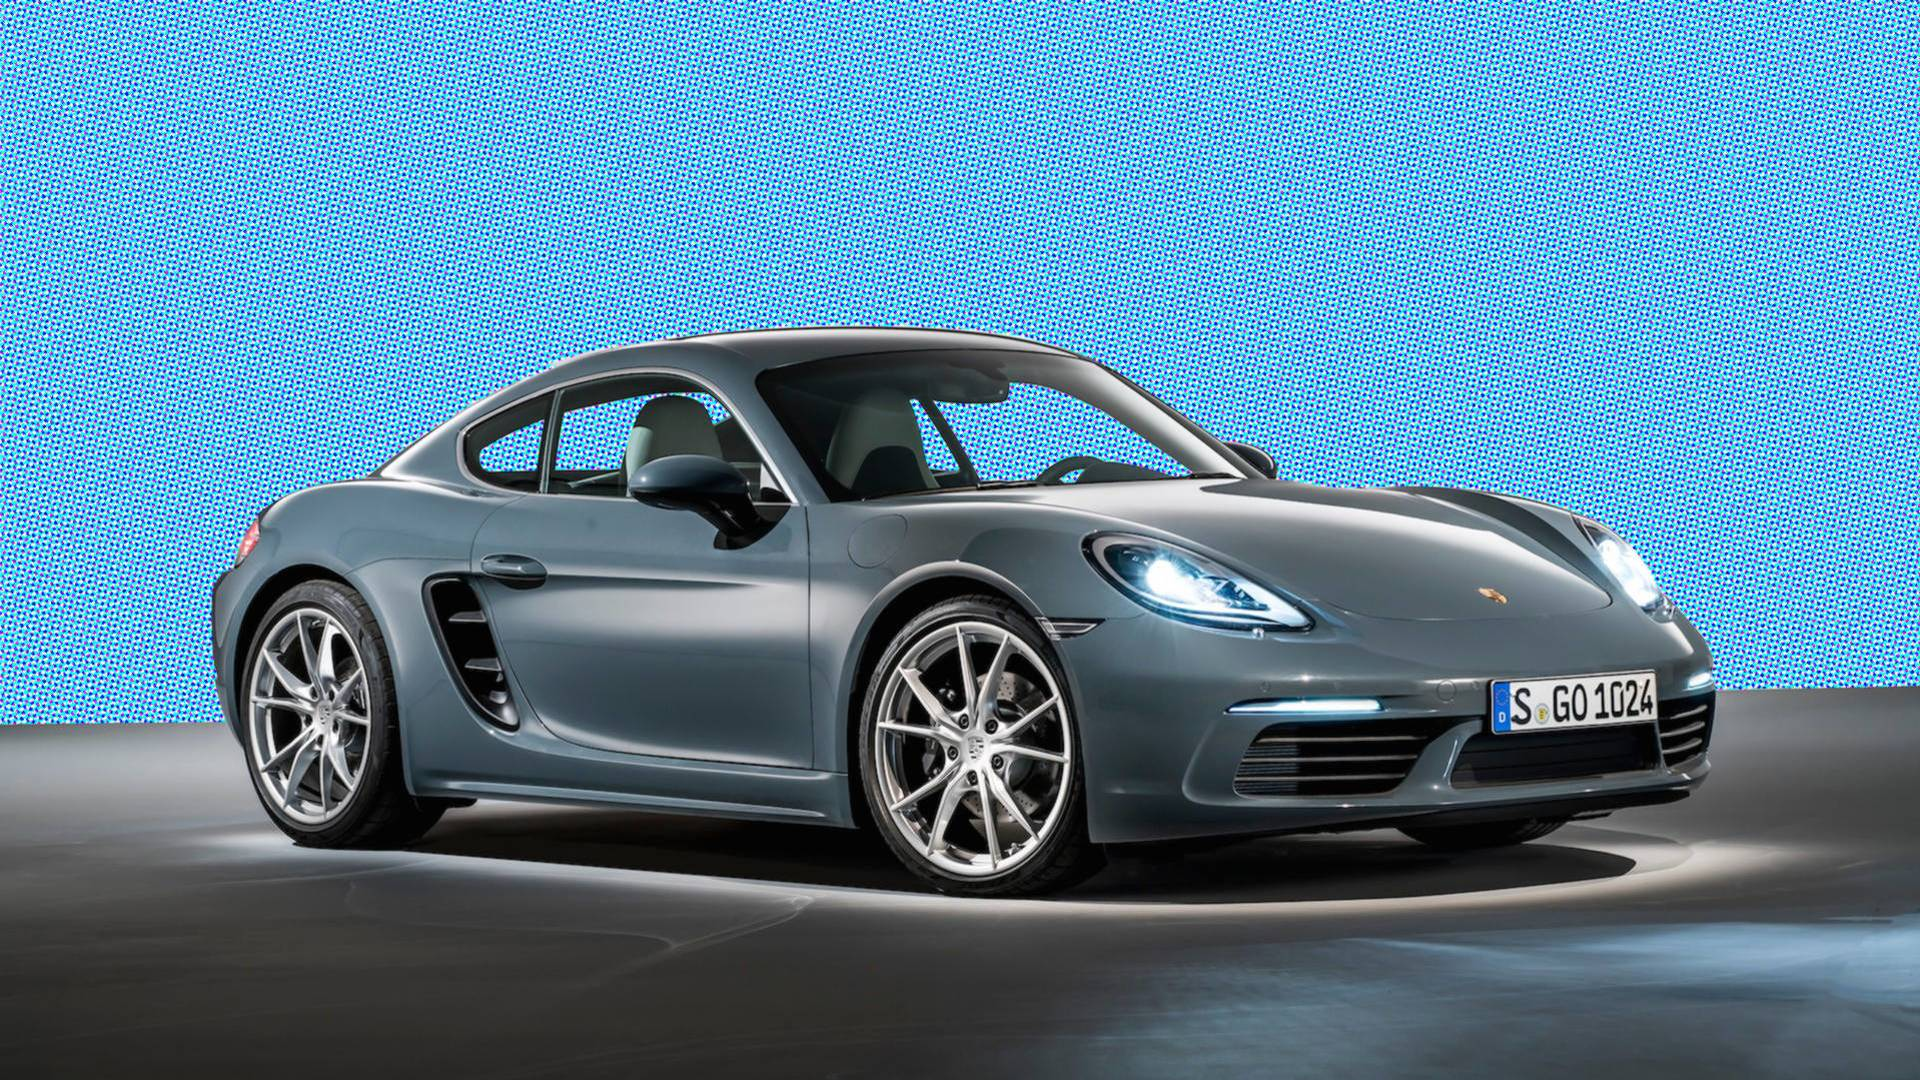 10 Most Expensive Vehicles To Maintain And Repair